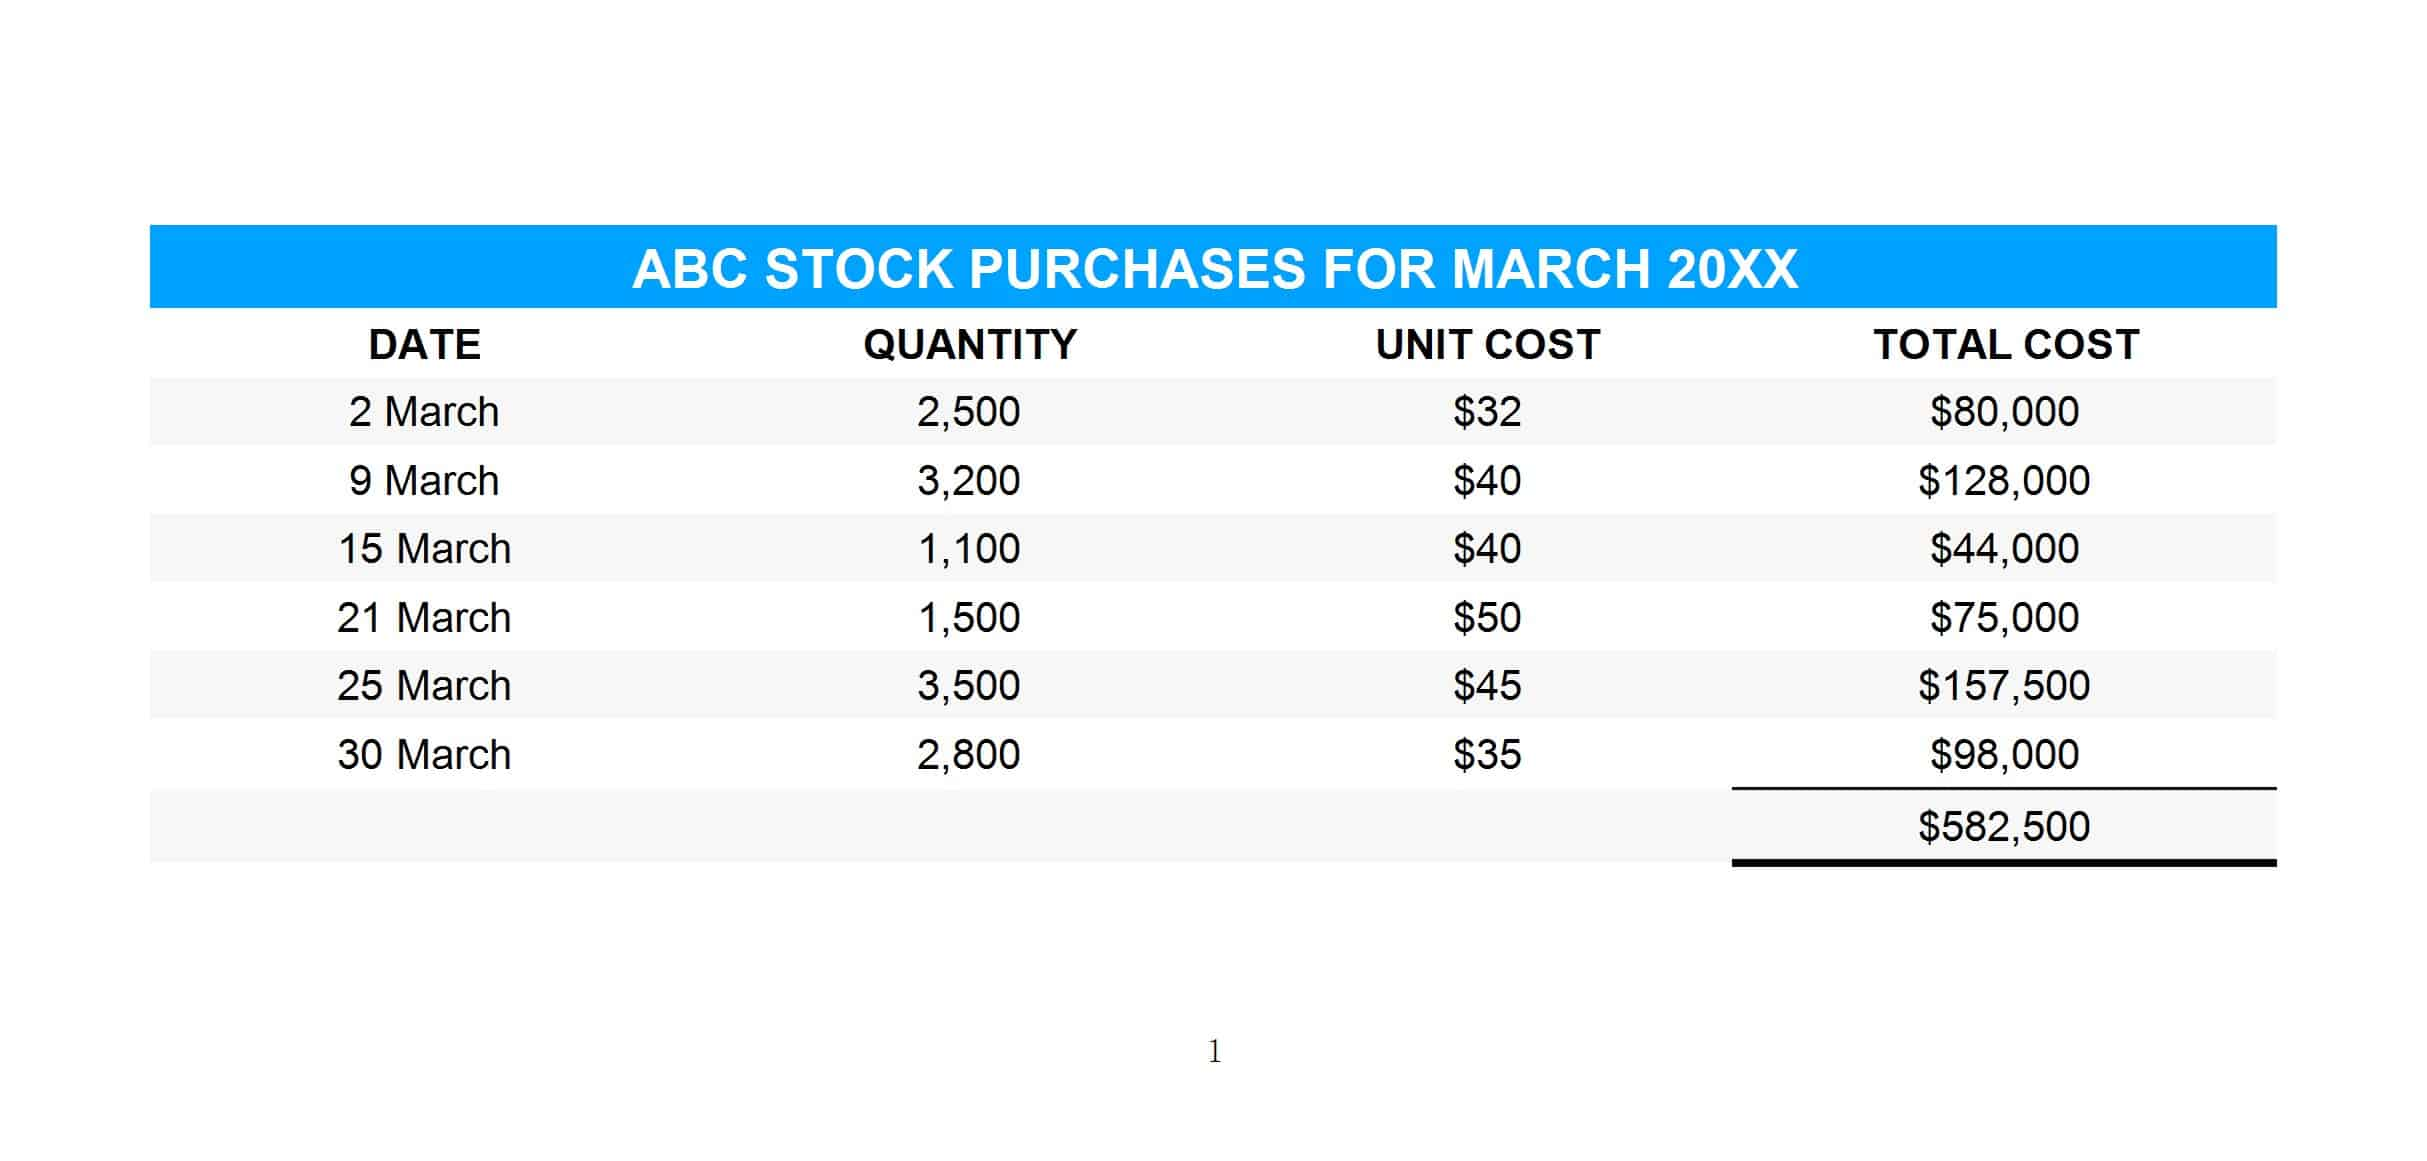 Stock purchases for ABC Ltd for March 20XX.